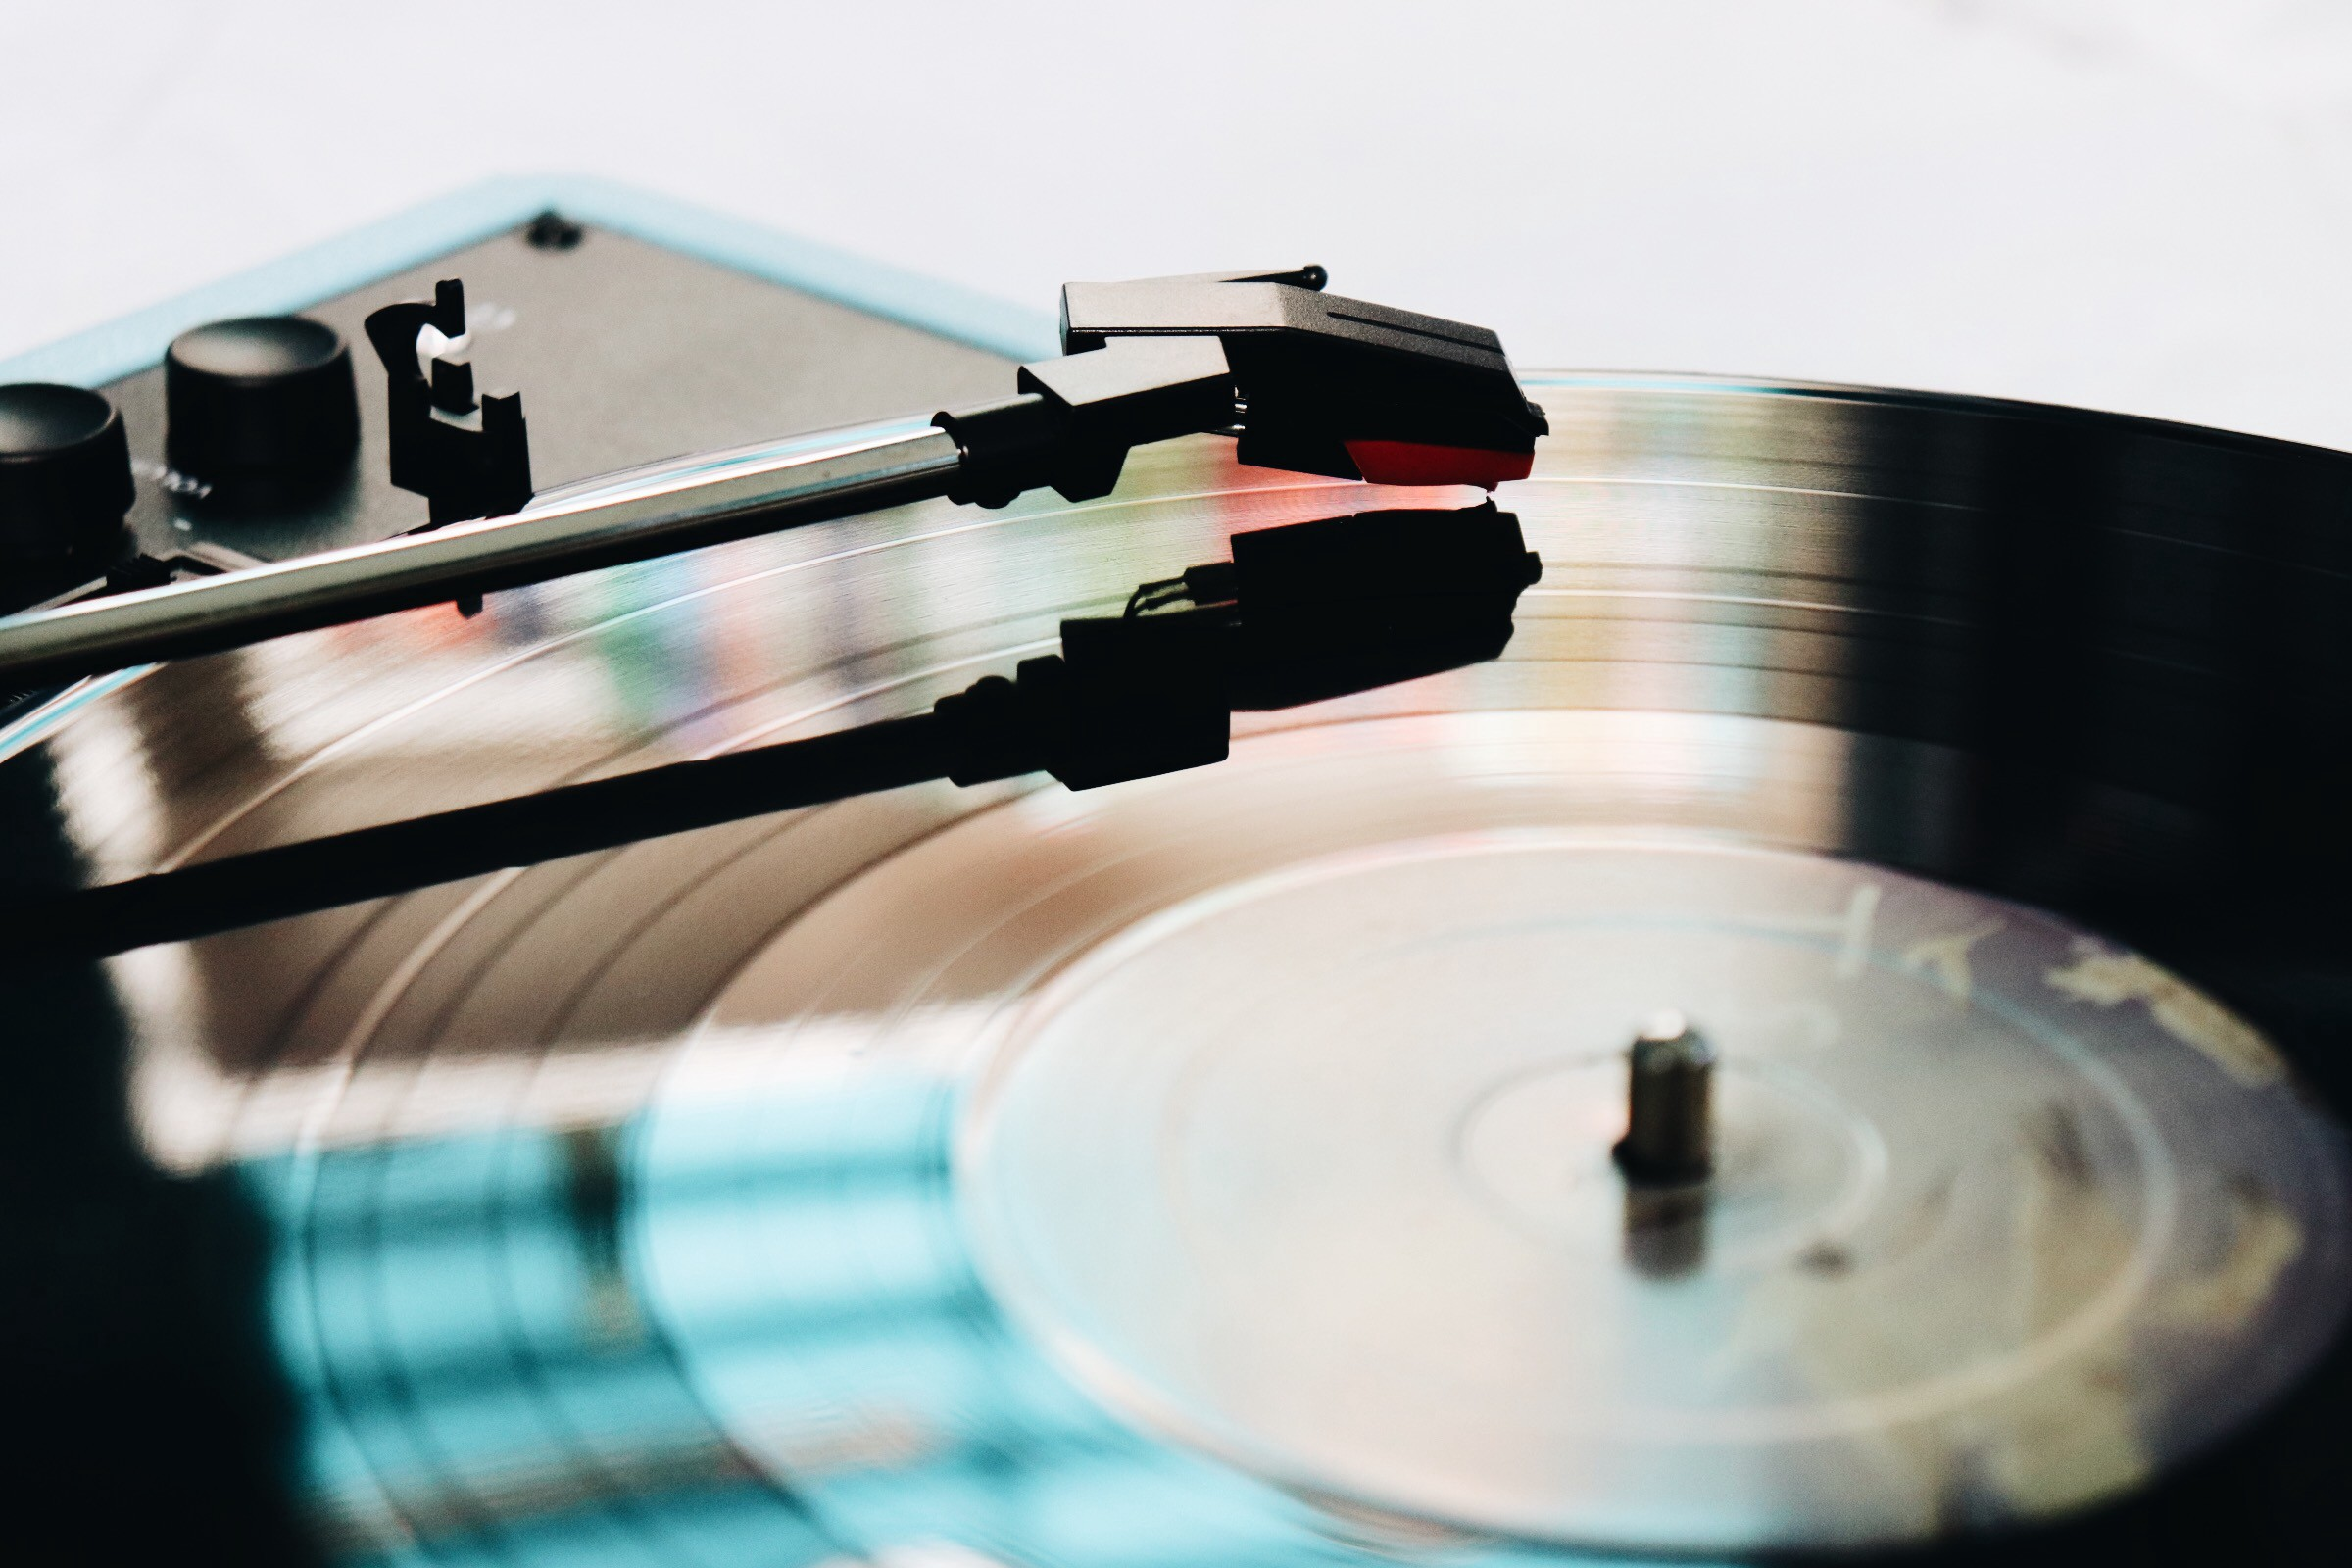 Record player, playing a 45 record